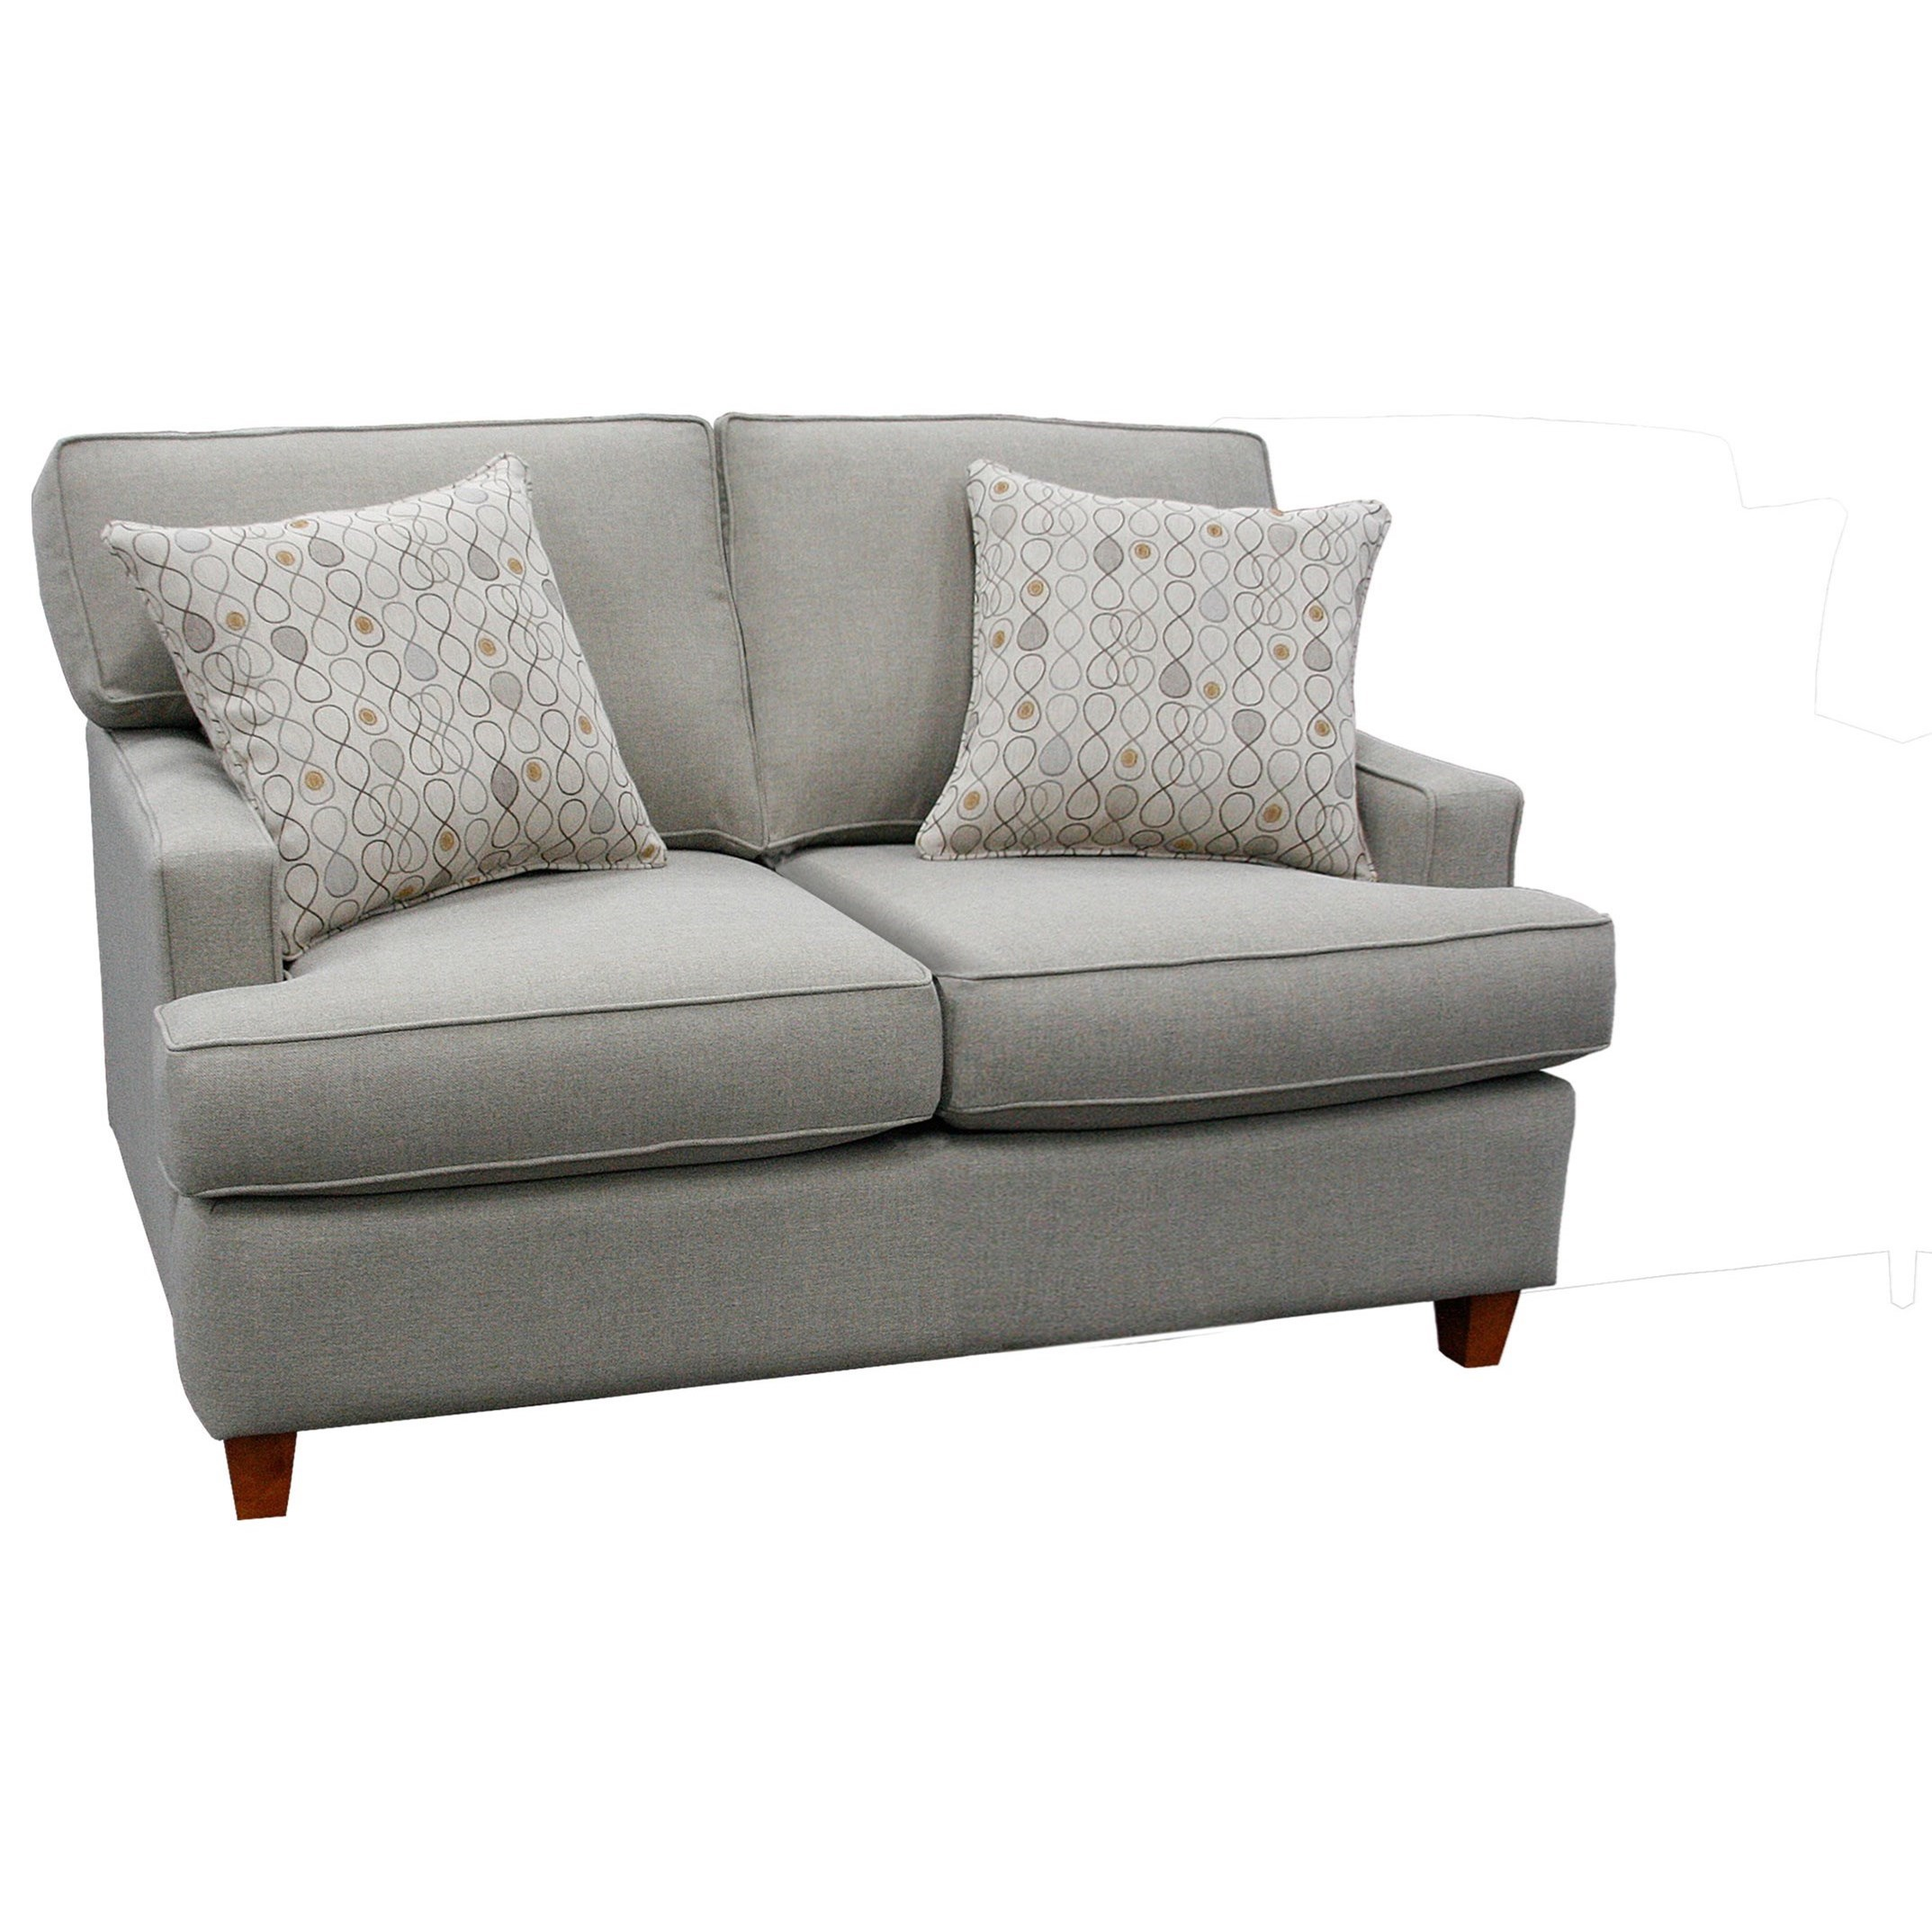 162 Loveseat by Capris Furniture at Esprit Decor Home Furnishings